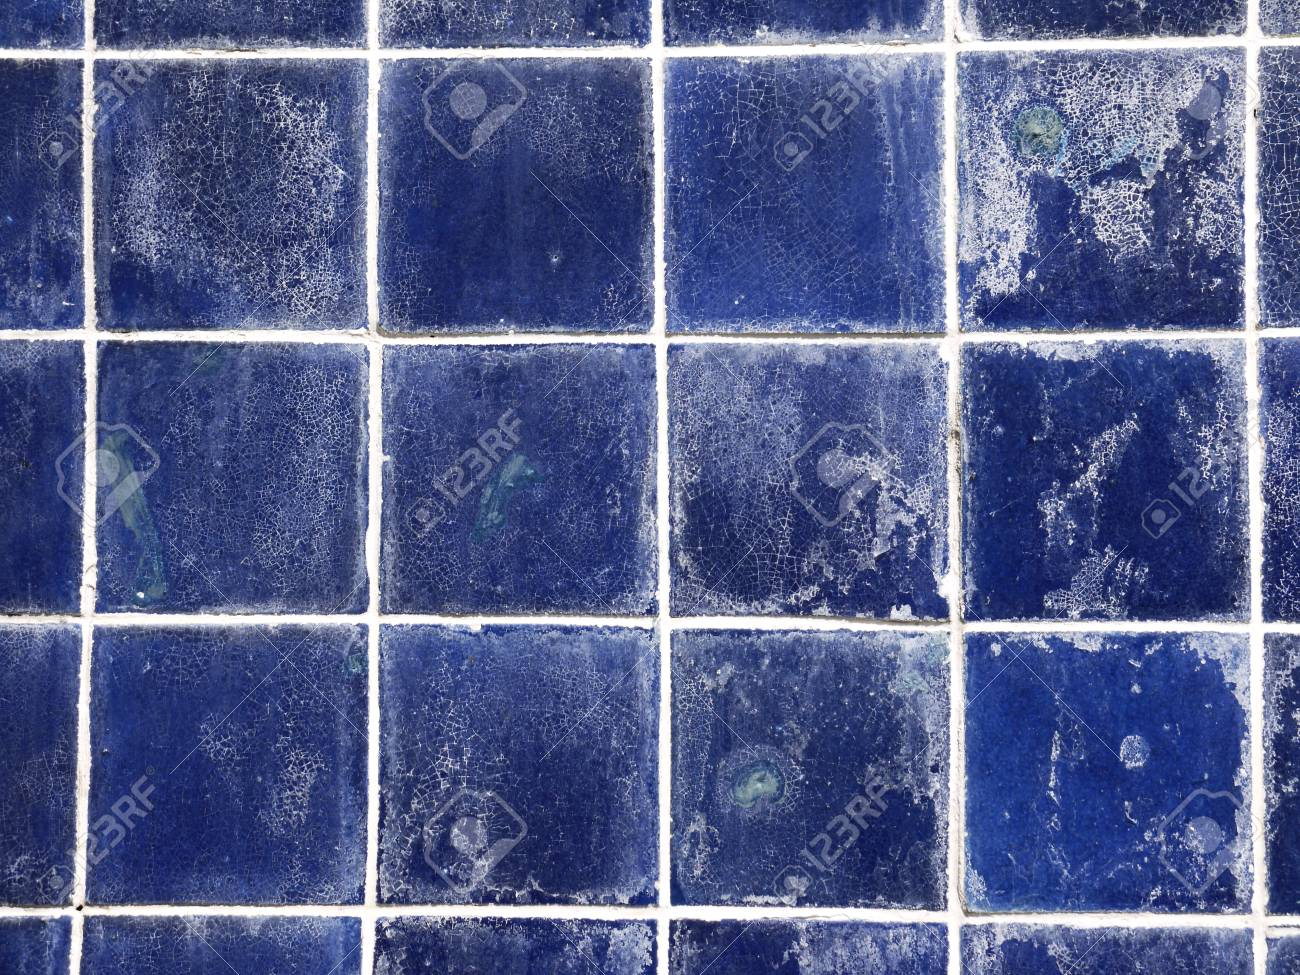 Grunge Old Blue Ceramic Wall Tiles Background Stock Photo, Picture ...